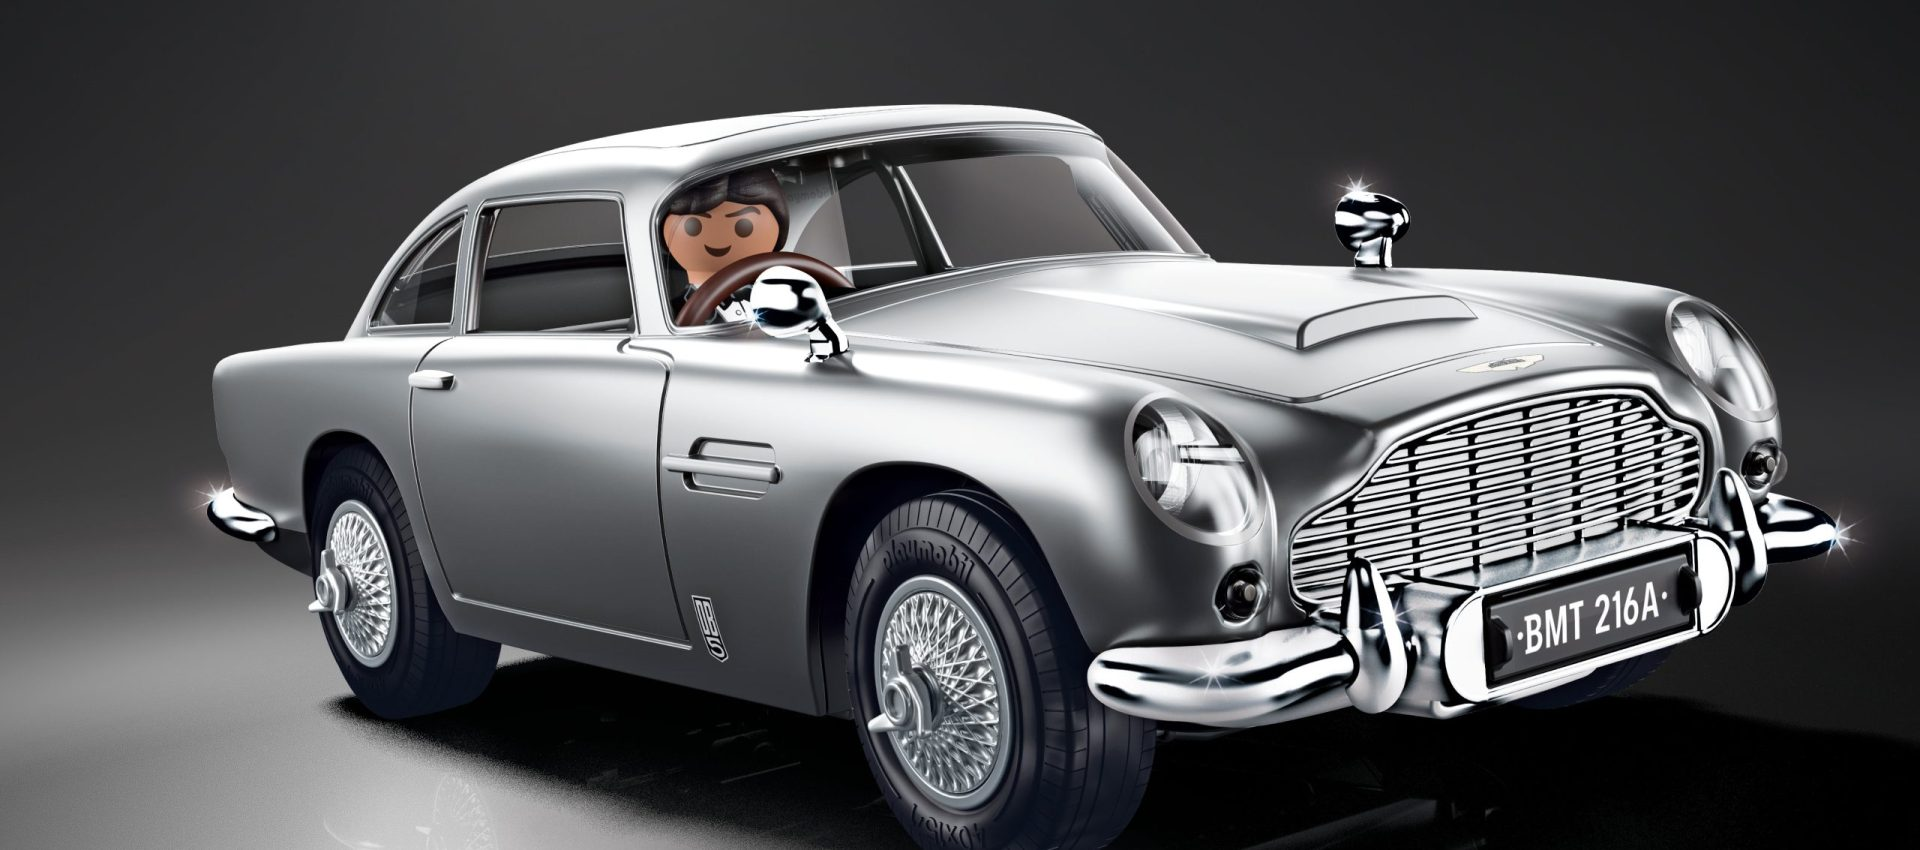 The James Bond Aston Martin DB5 – Goldfinger Editionfrom PLAYMOBIL is ready to serve on Her Majesty's Secret Service